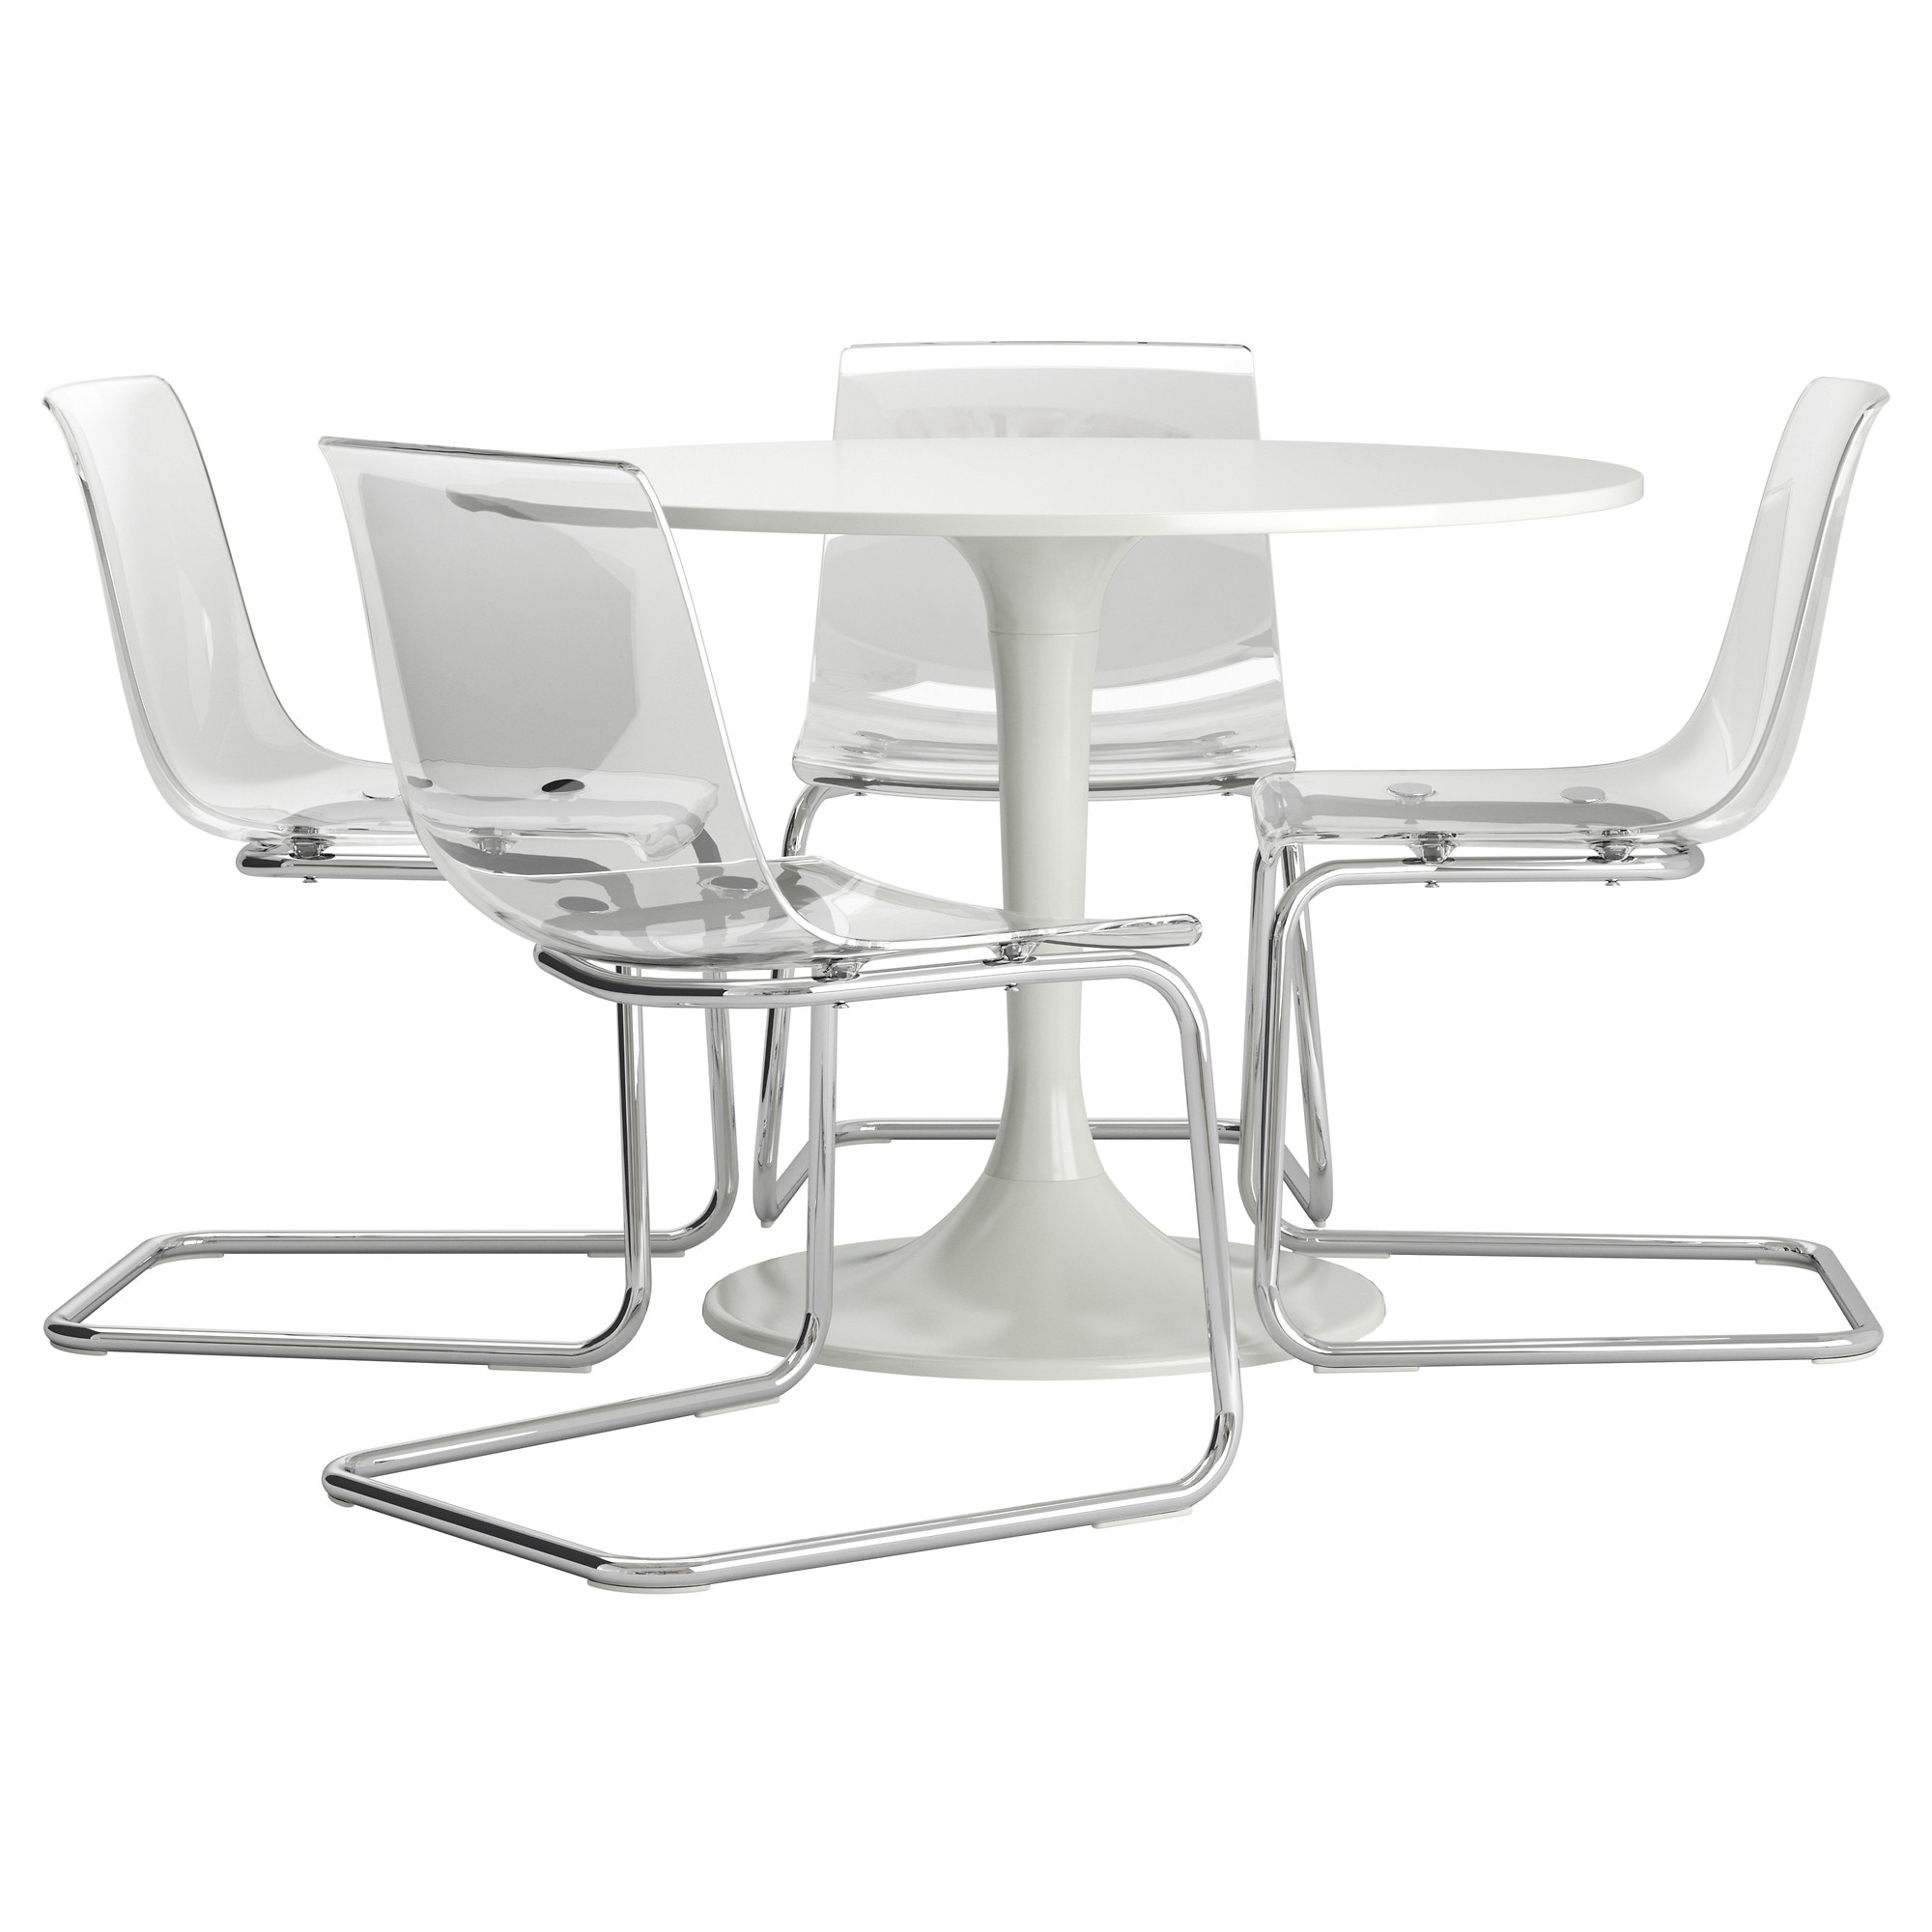 BlancTransparent Table 4 Docksta Tobias Et Chaises MUVSpz